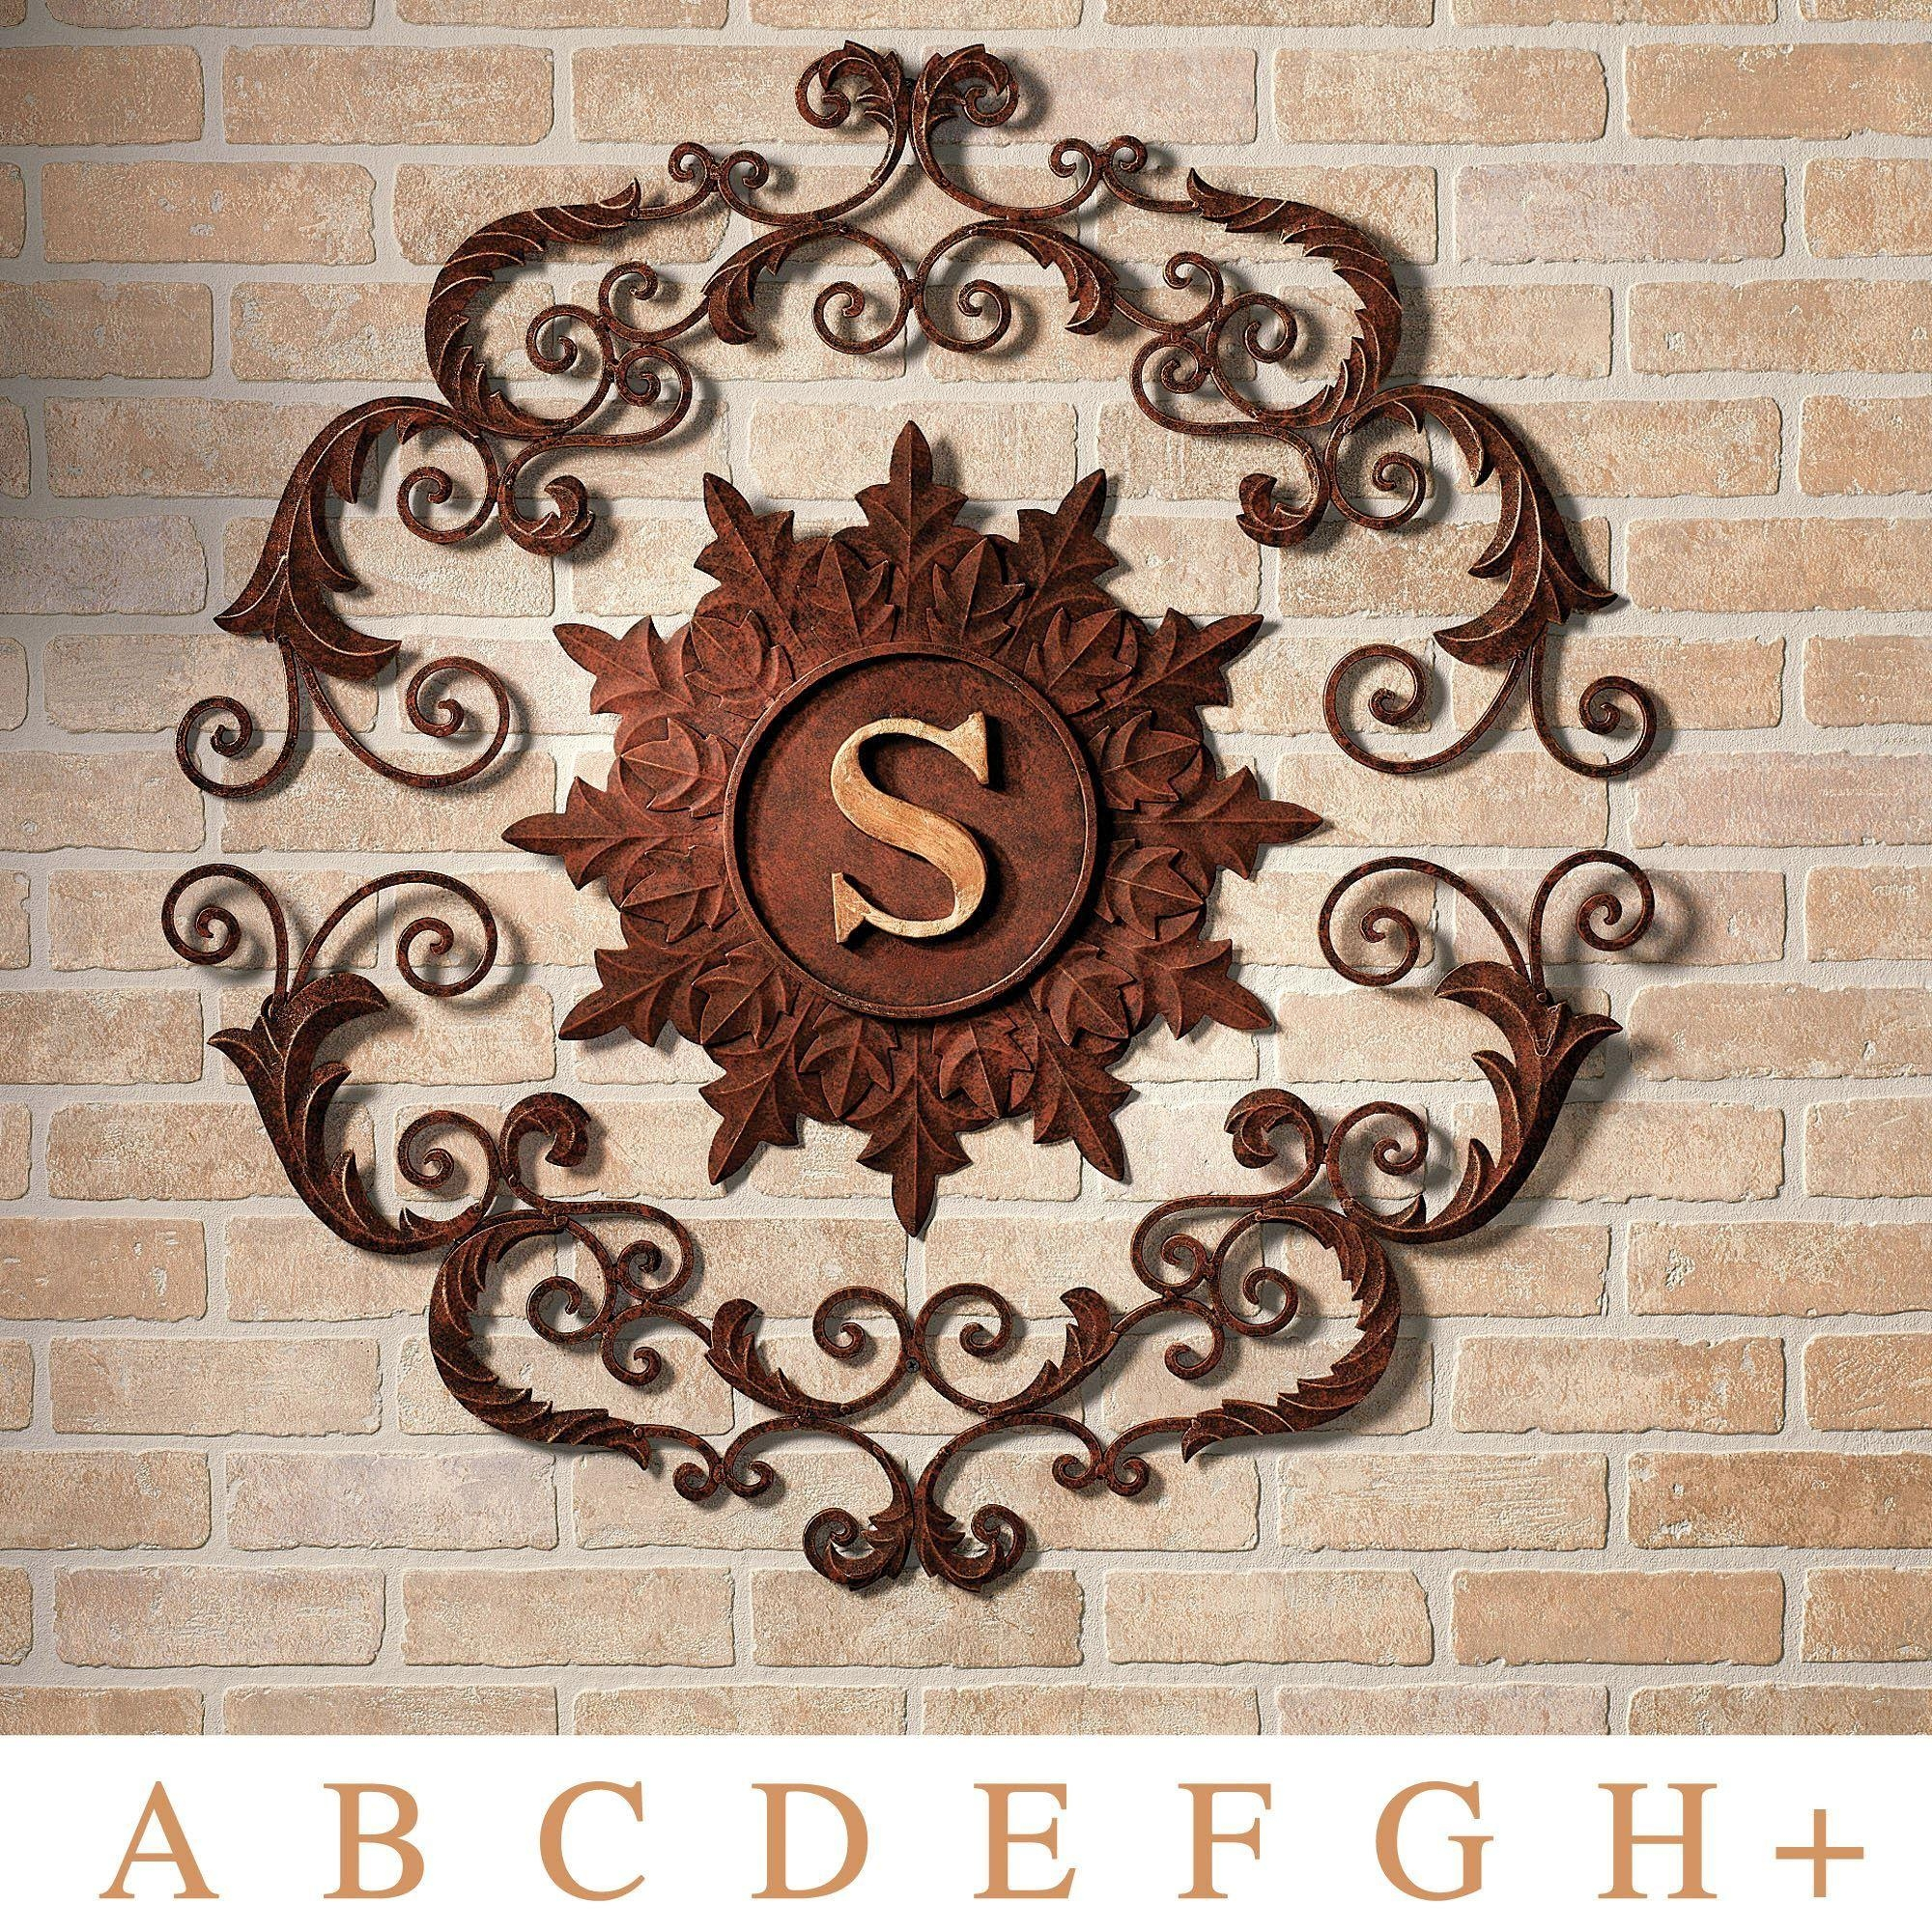 Kingston Monogram Metal Wall Grille Within Large Metal Wall Art For Outdoor (Image 9 of 20)